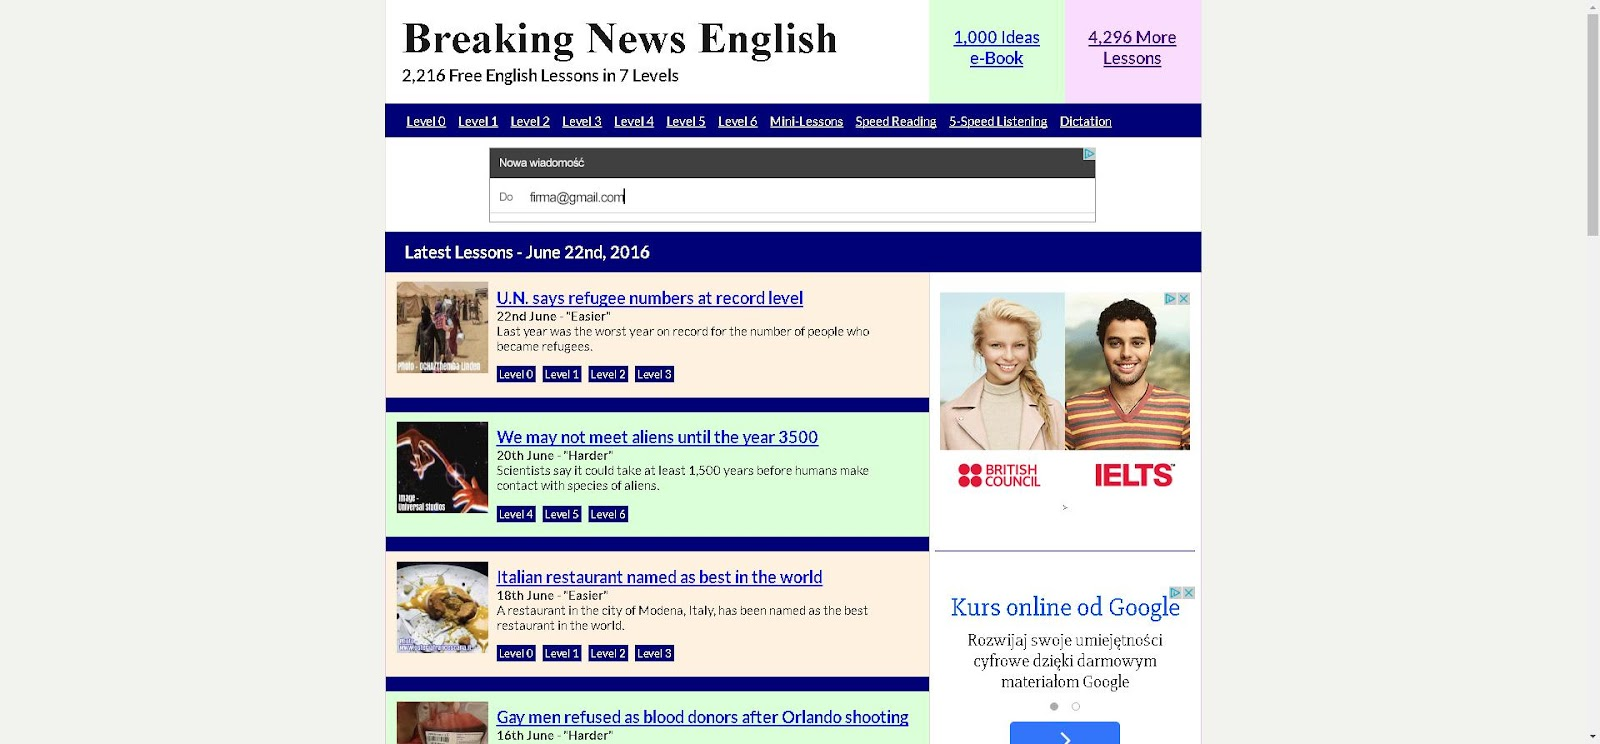 Breaking News English Lessons- Easy English News - Current Events.jpg